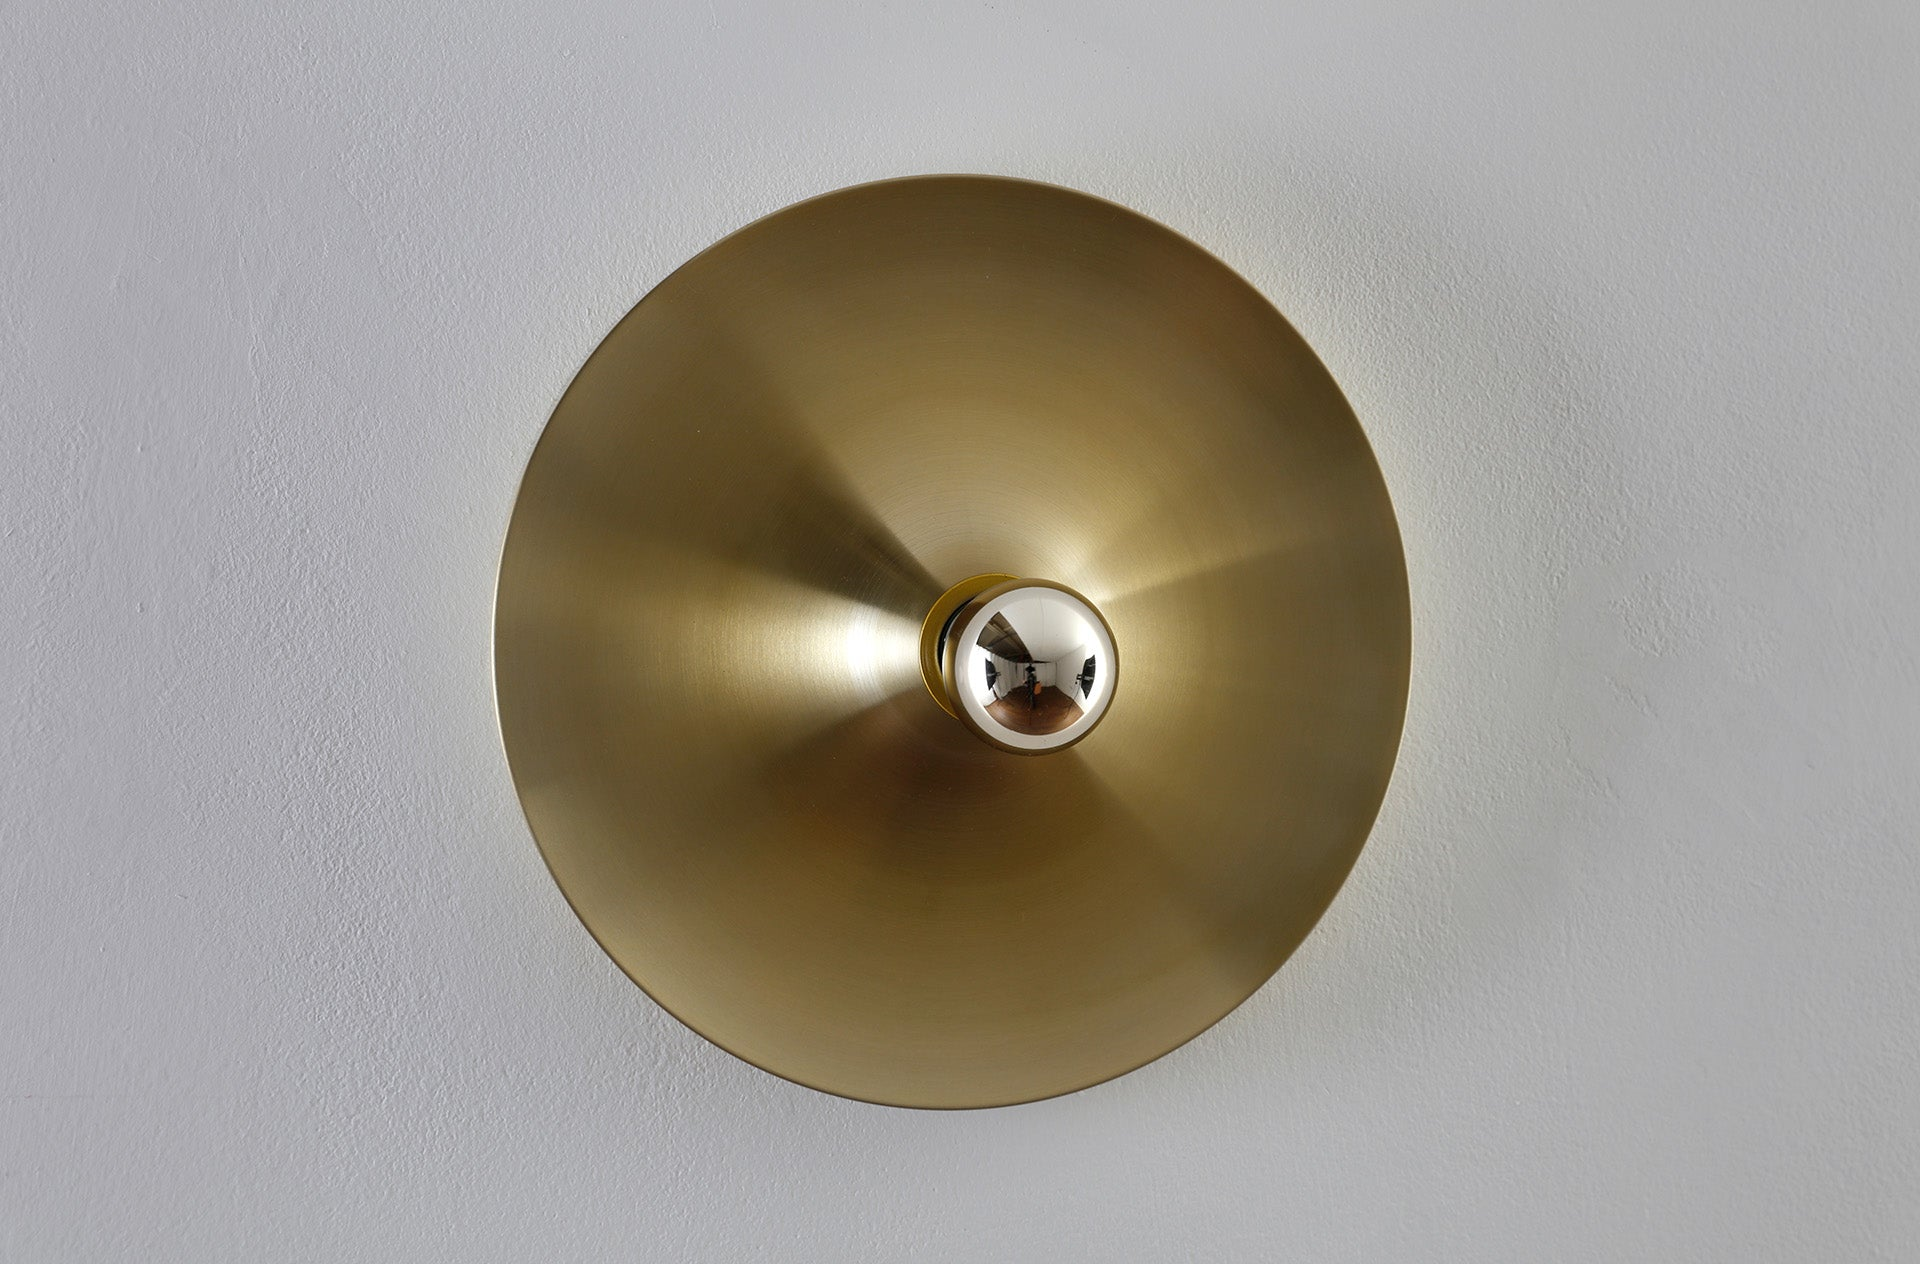 Golden Flush mount light by Honsel